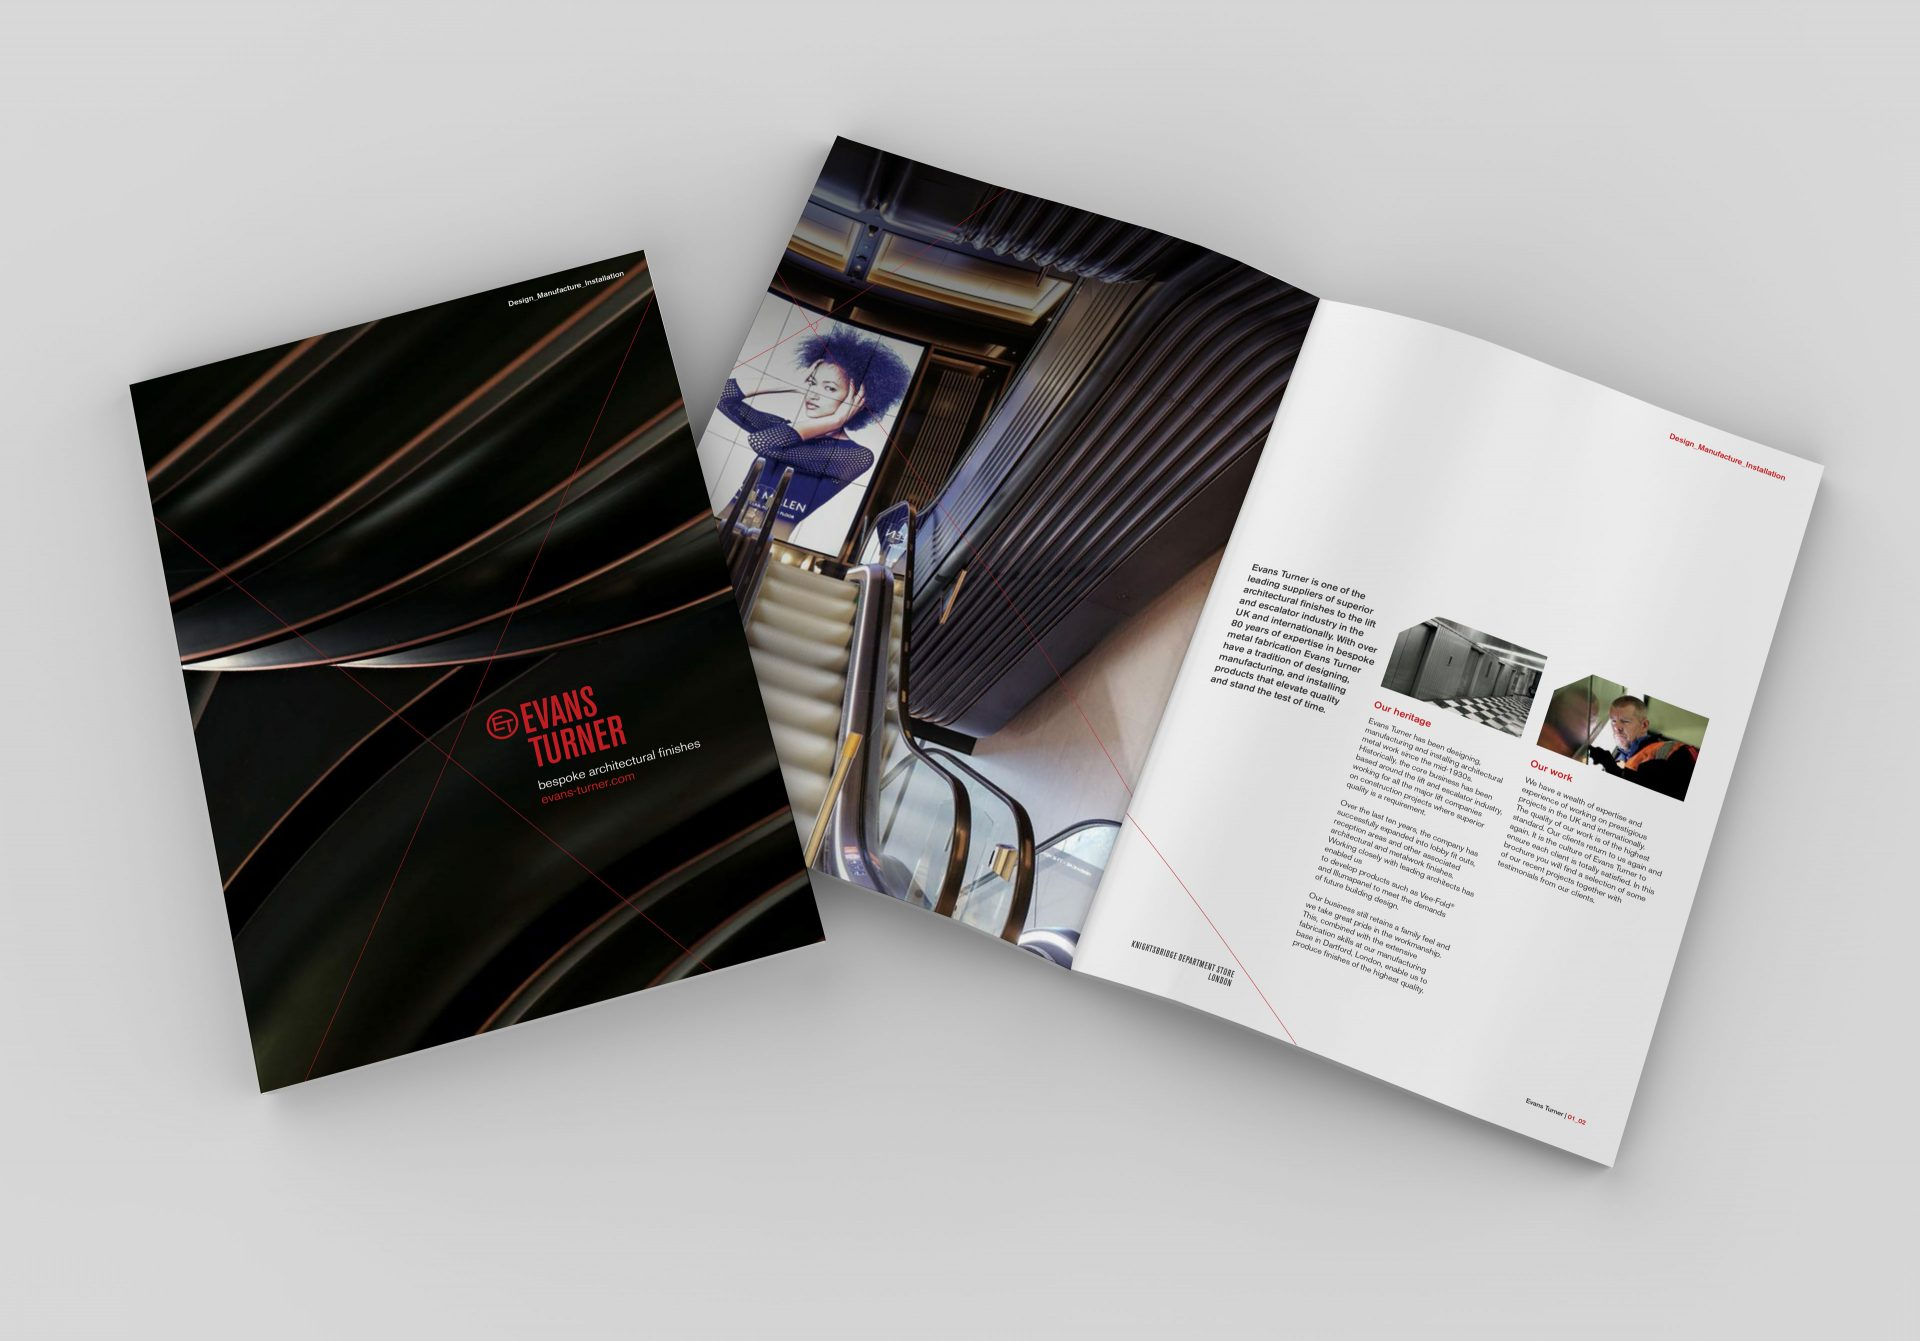 Evans-Turner-Brochure-design-by-Nugget-Design